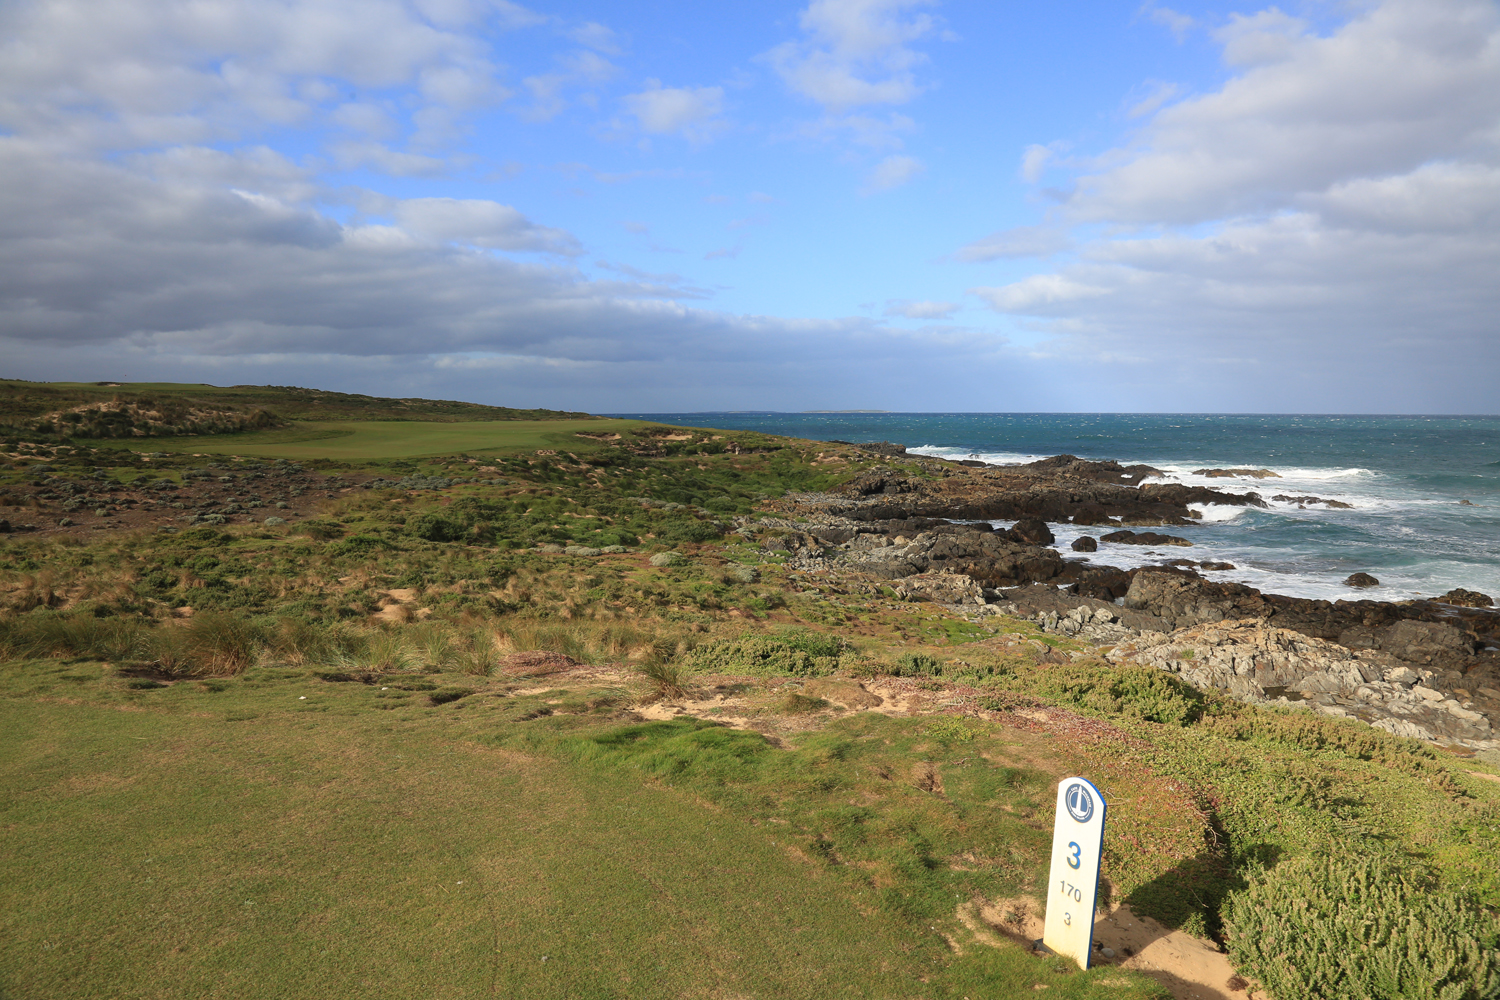 Cape Wickham Links - Hole 3 - King Island - PerryGolf.com